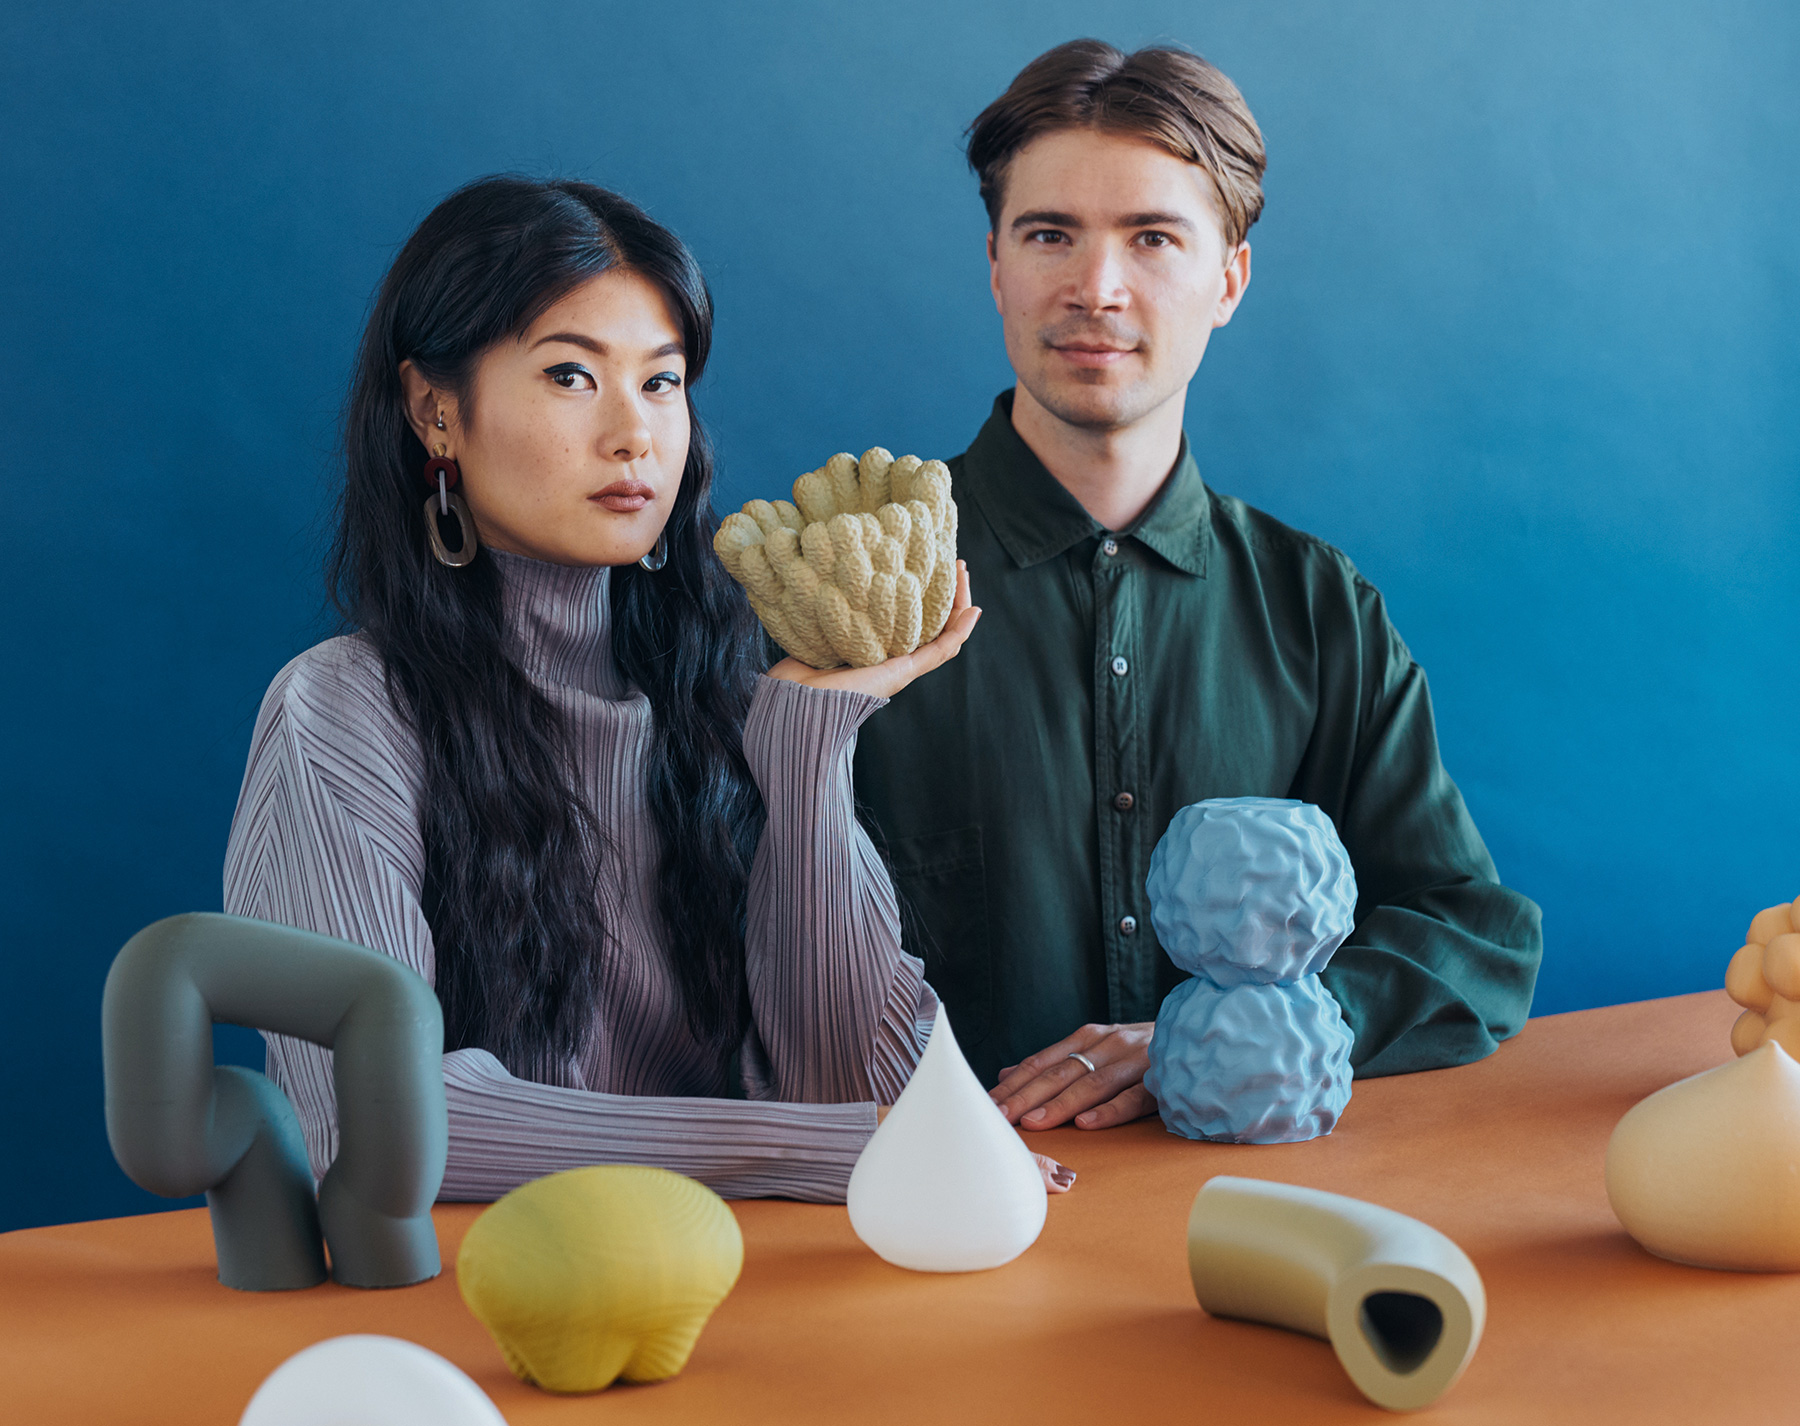 Graphic design game changers: Wang and Söderström